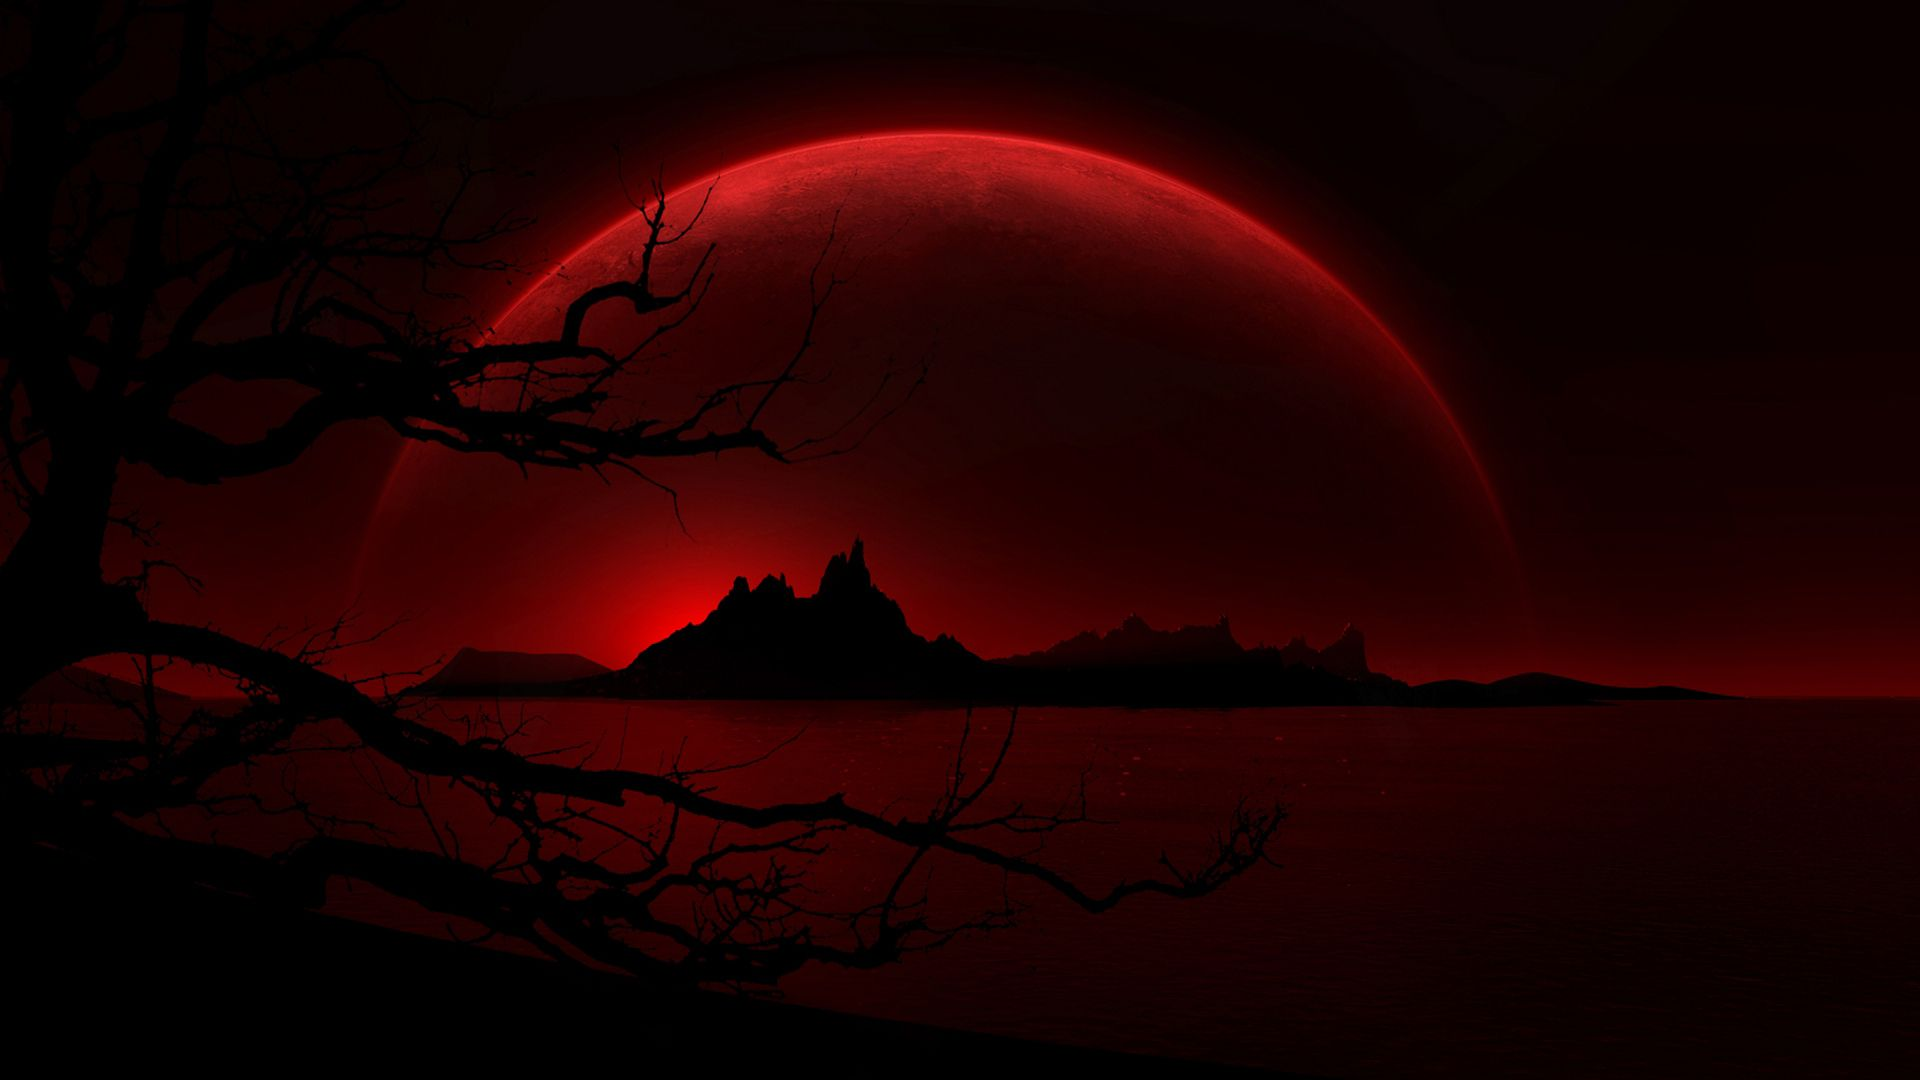 blood-red-moon-hd-wallpaper-341068.jpg (1920?1080) ? Mystery Anime Wallpapers ? Pinterest ...